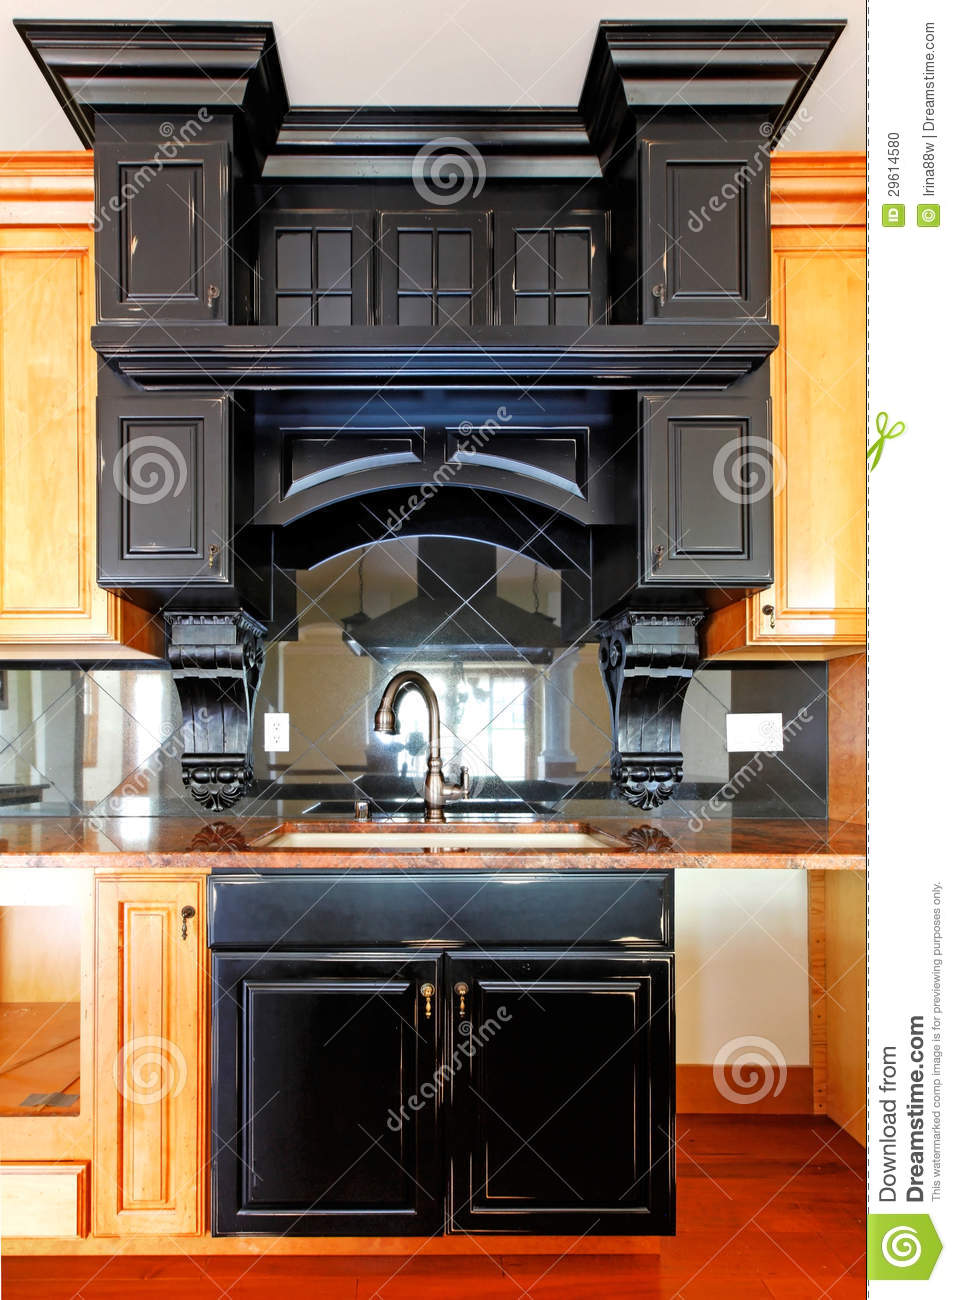 Kitchen Island And Stove Custom Wood Cabinets New Luxury Home Interior Stock Photo Image Of